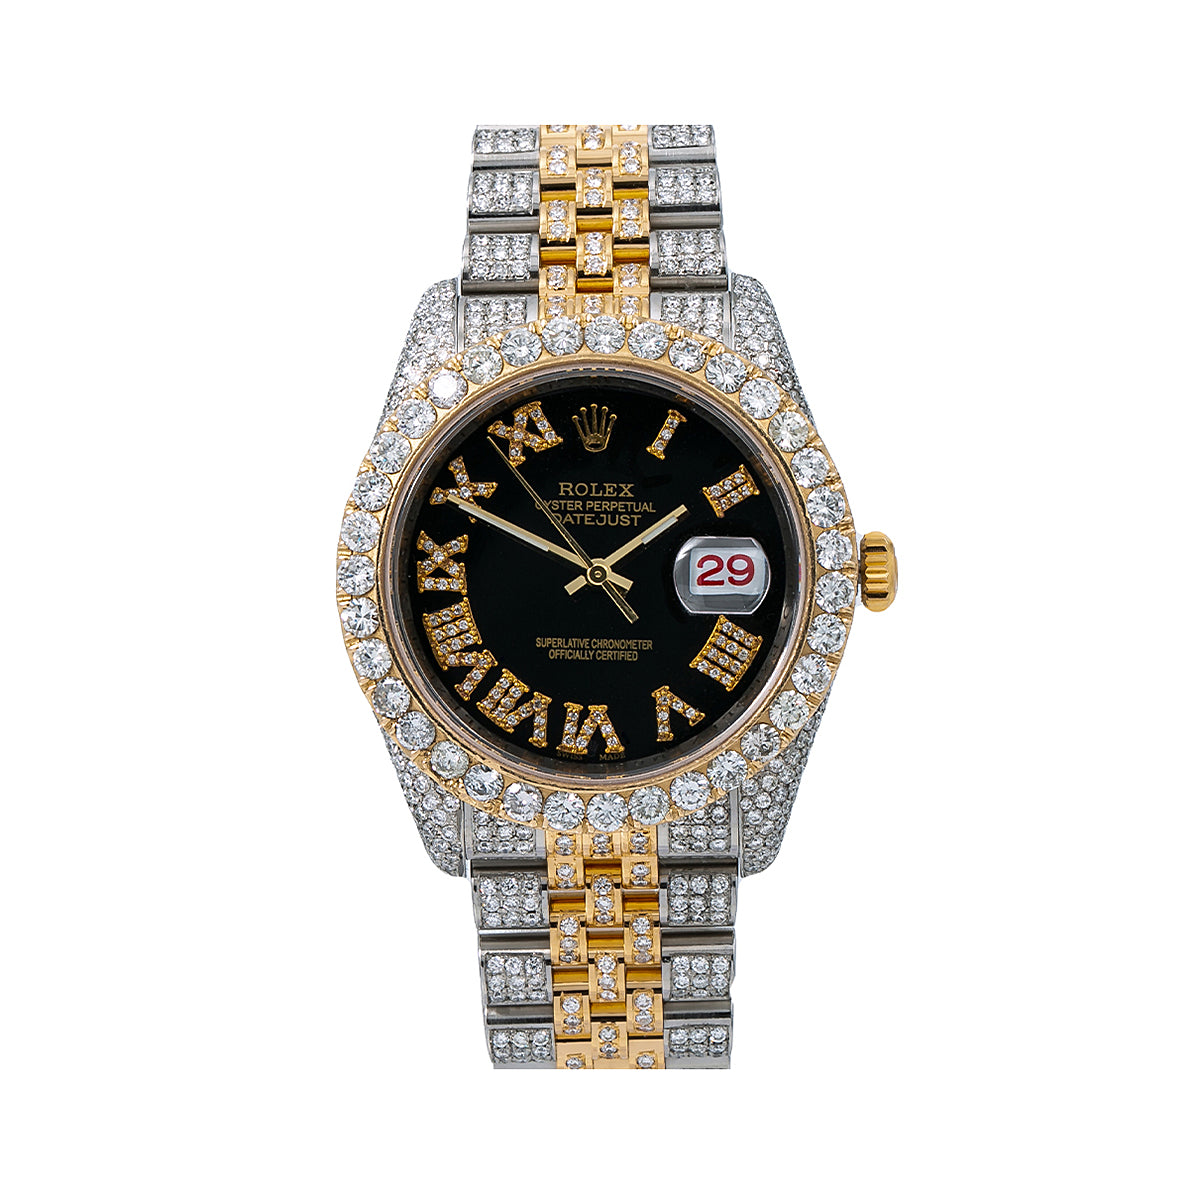 Rolex Datejust Diamond Watch, 116233 36mm, Black Diamond Dial With Two Tone Jubilee Bracelet